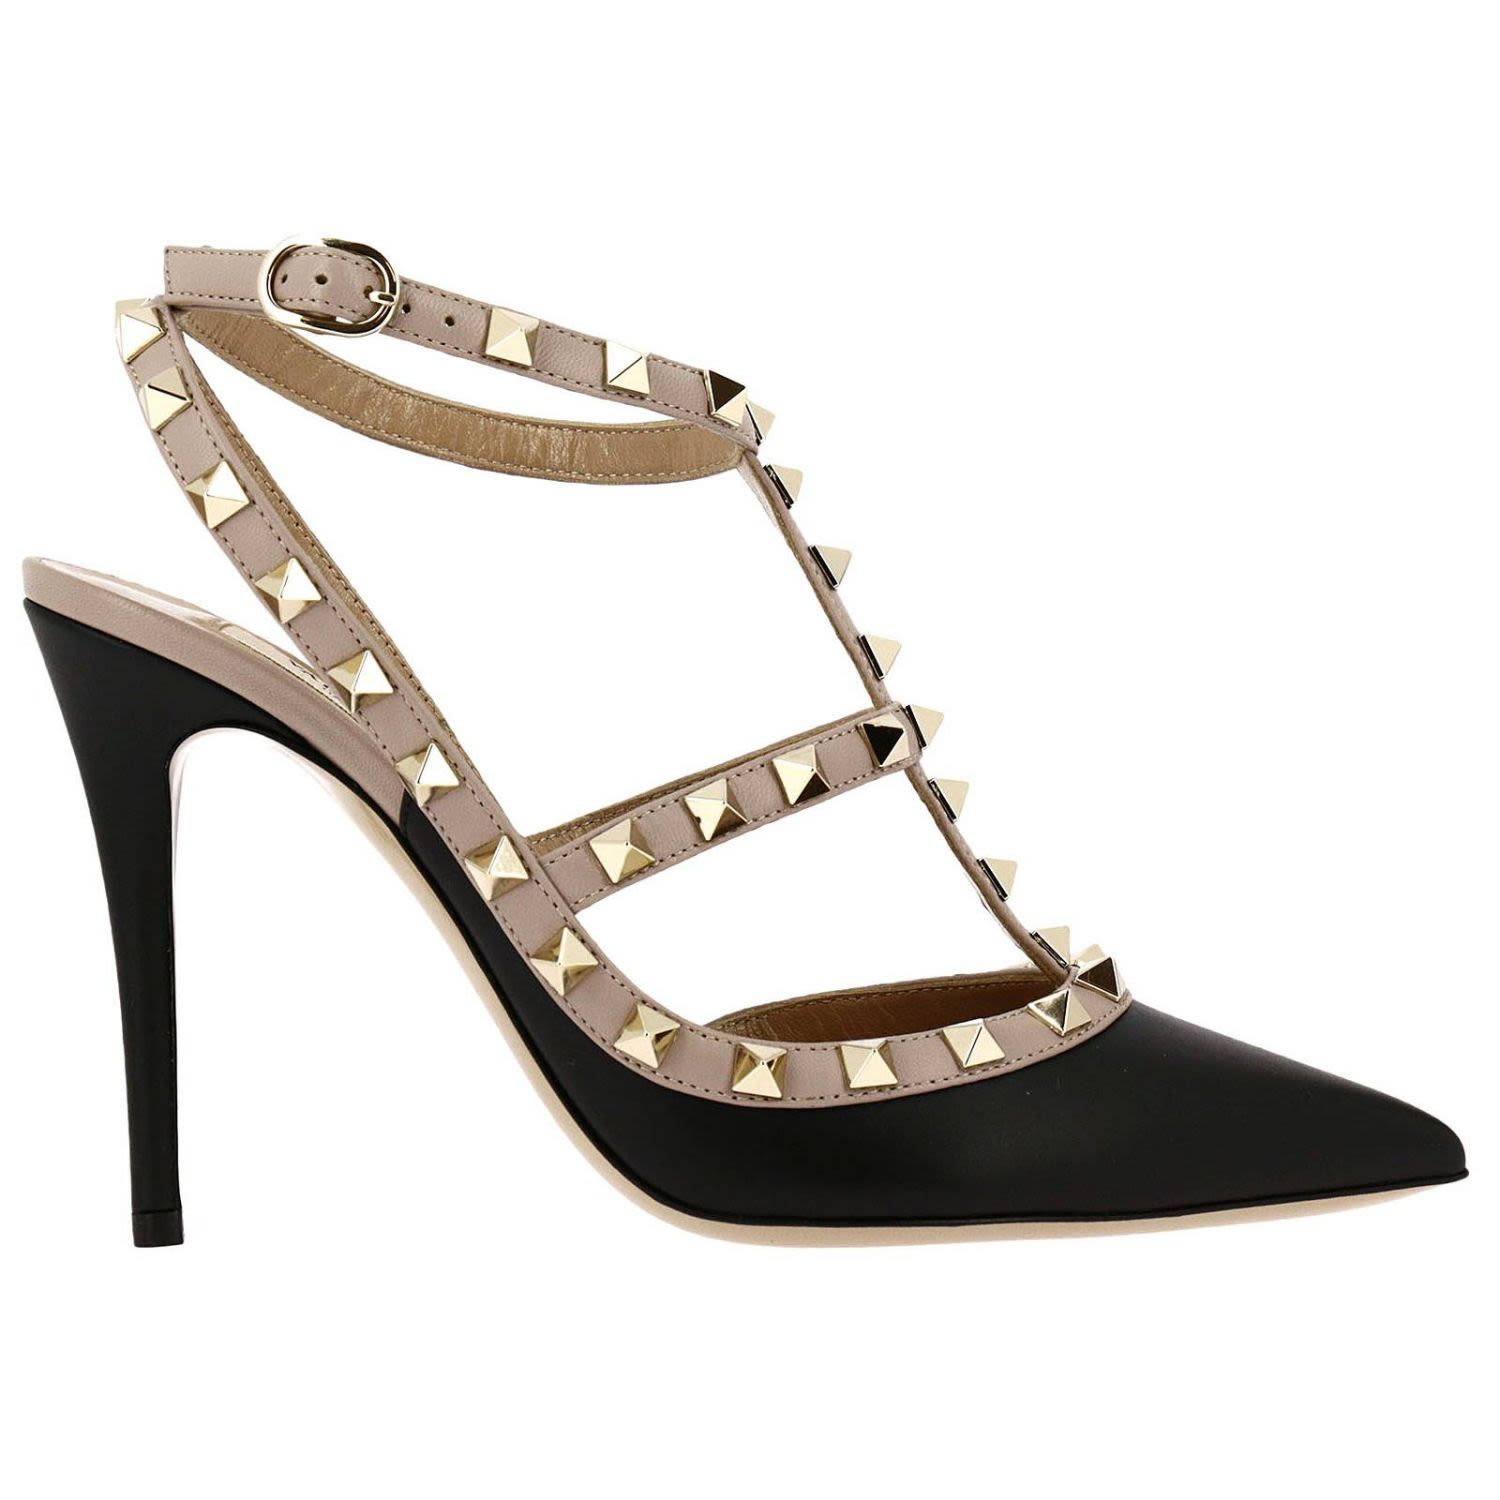 Valentino Garavani - Pumps Shoes Women Valentino Garavani ...